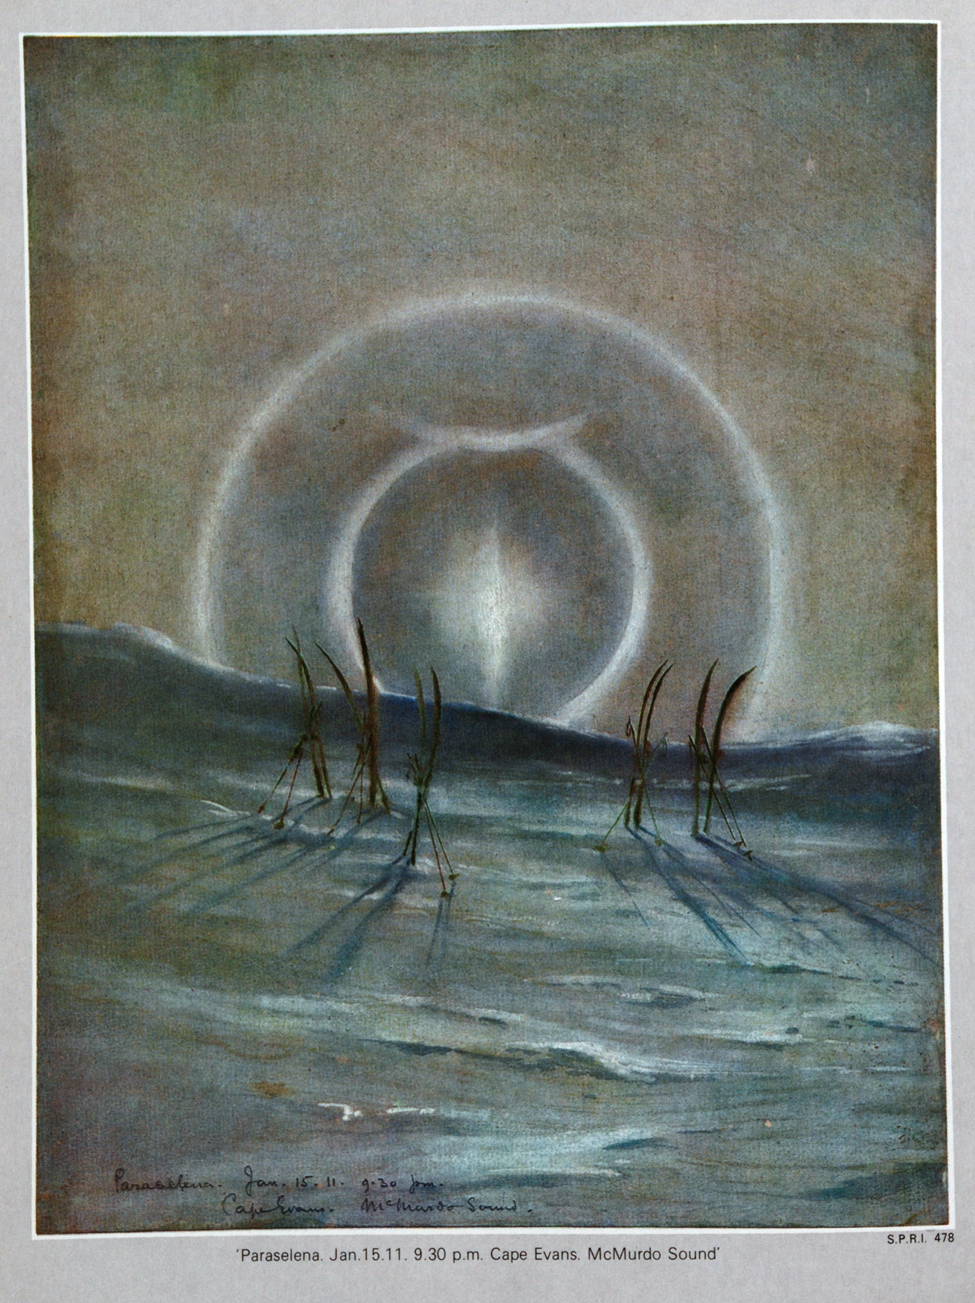 Edward Wilson. <i>Diary of the 'Terra Nova' Expedition to the Antarctic 1910–1912.</i> New York: Humanities Press, 1972.